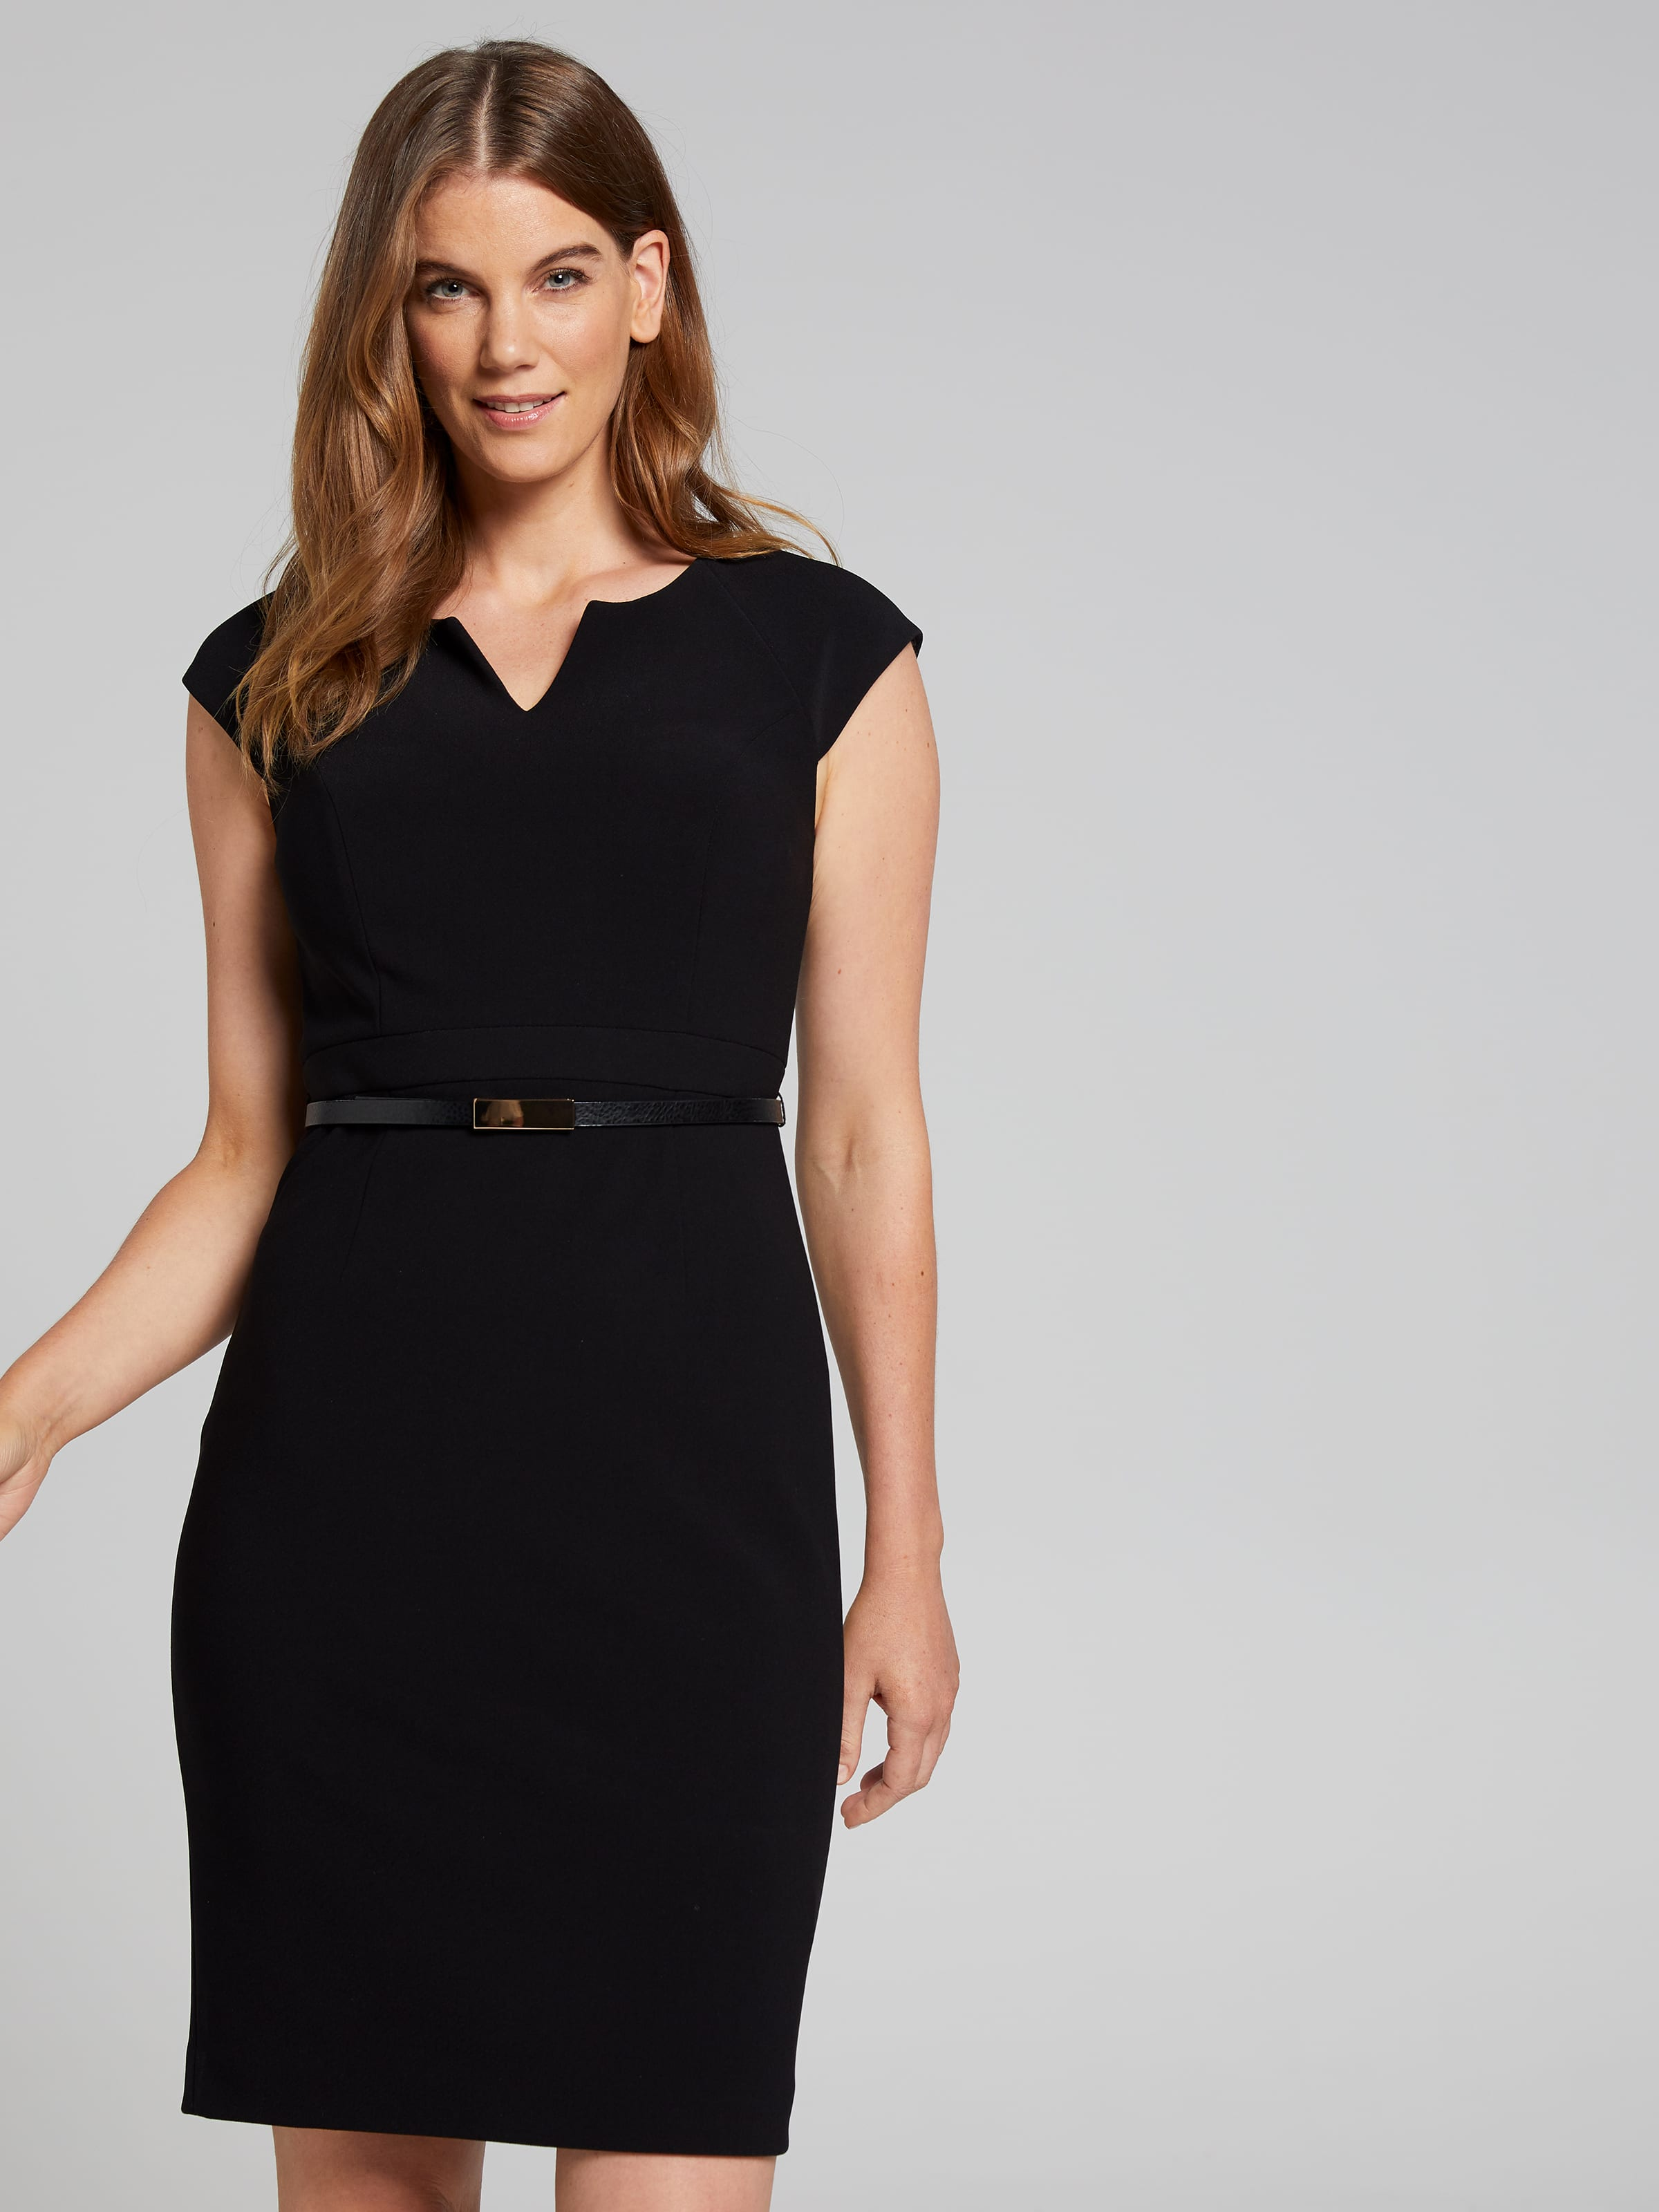 Image of Jacqui E Australia Jacqui E Rosie Belt Notch Neck Shift Dress